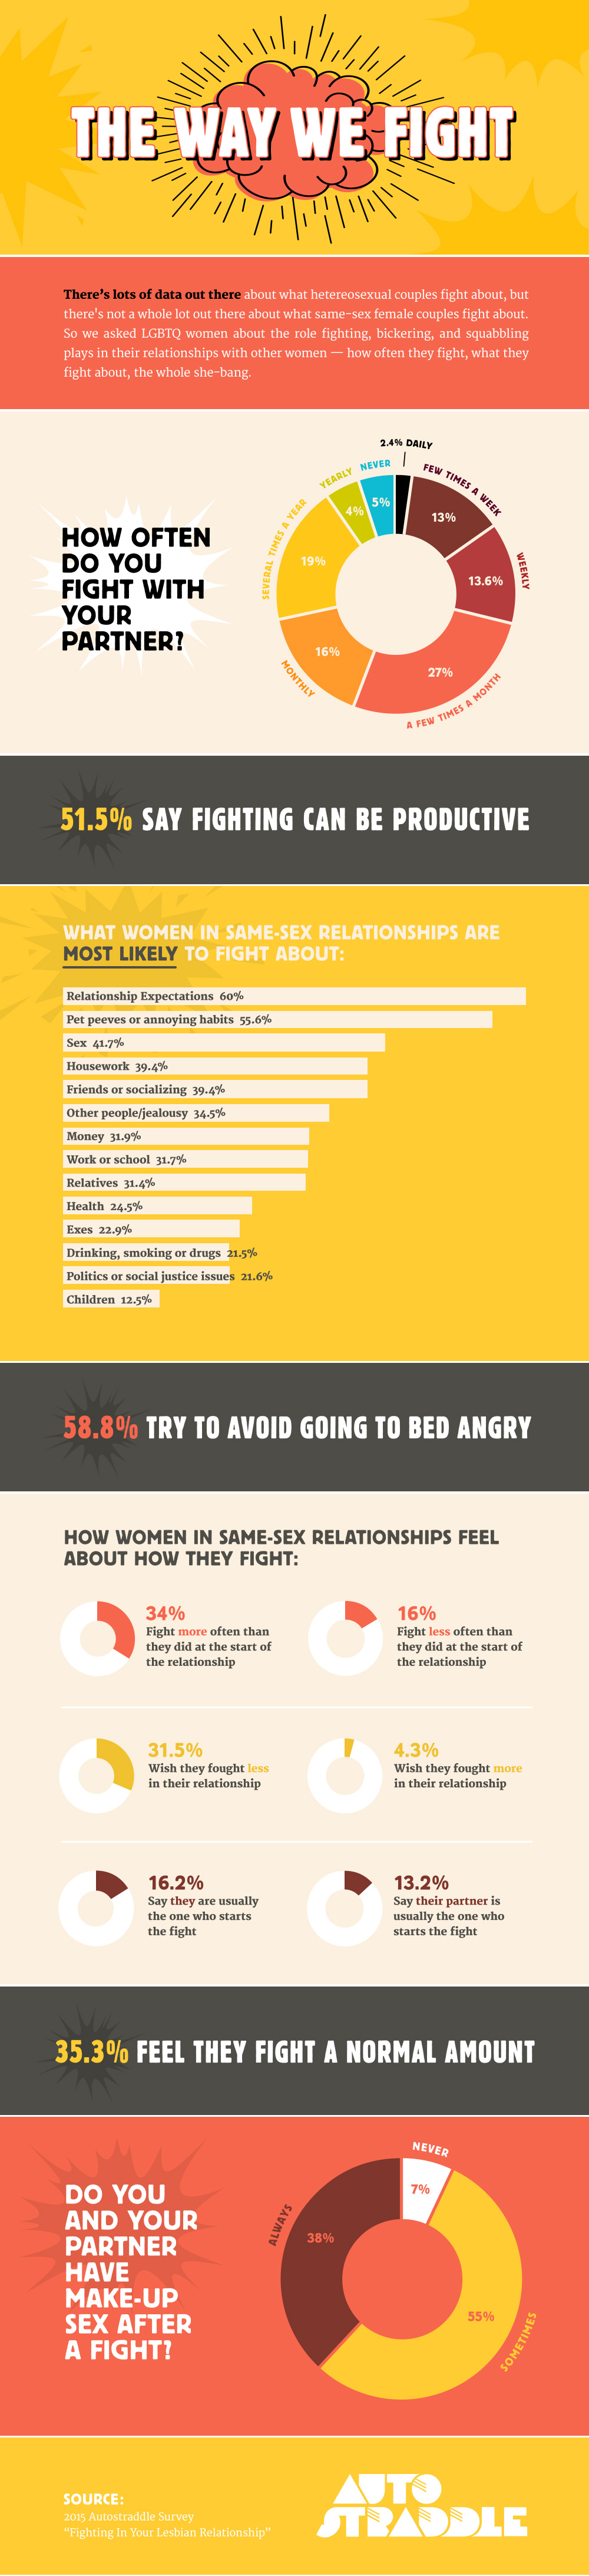 What Do Women In Lesbian Relationships Fight About